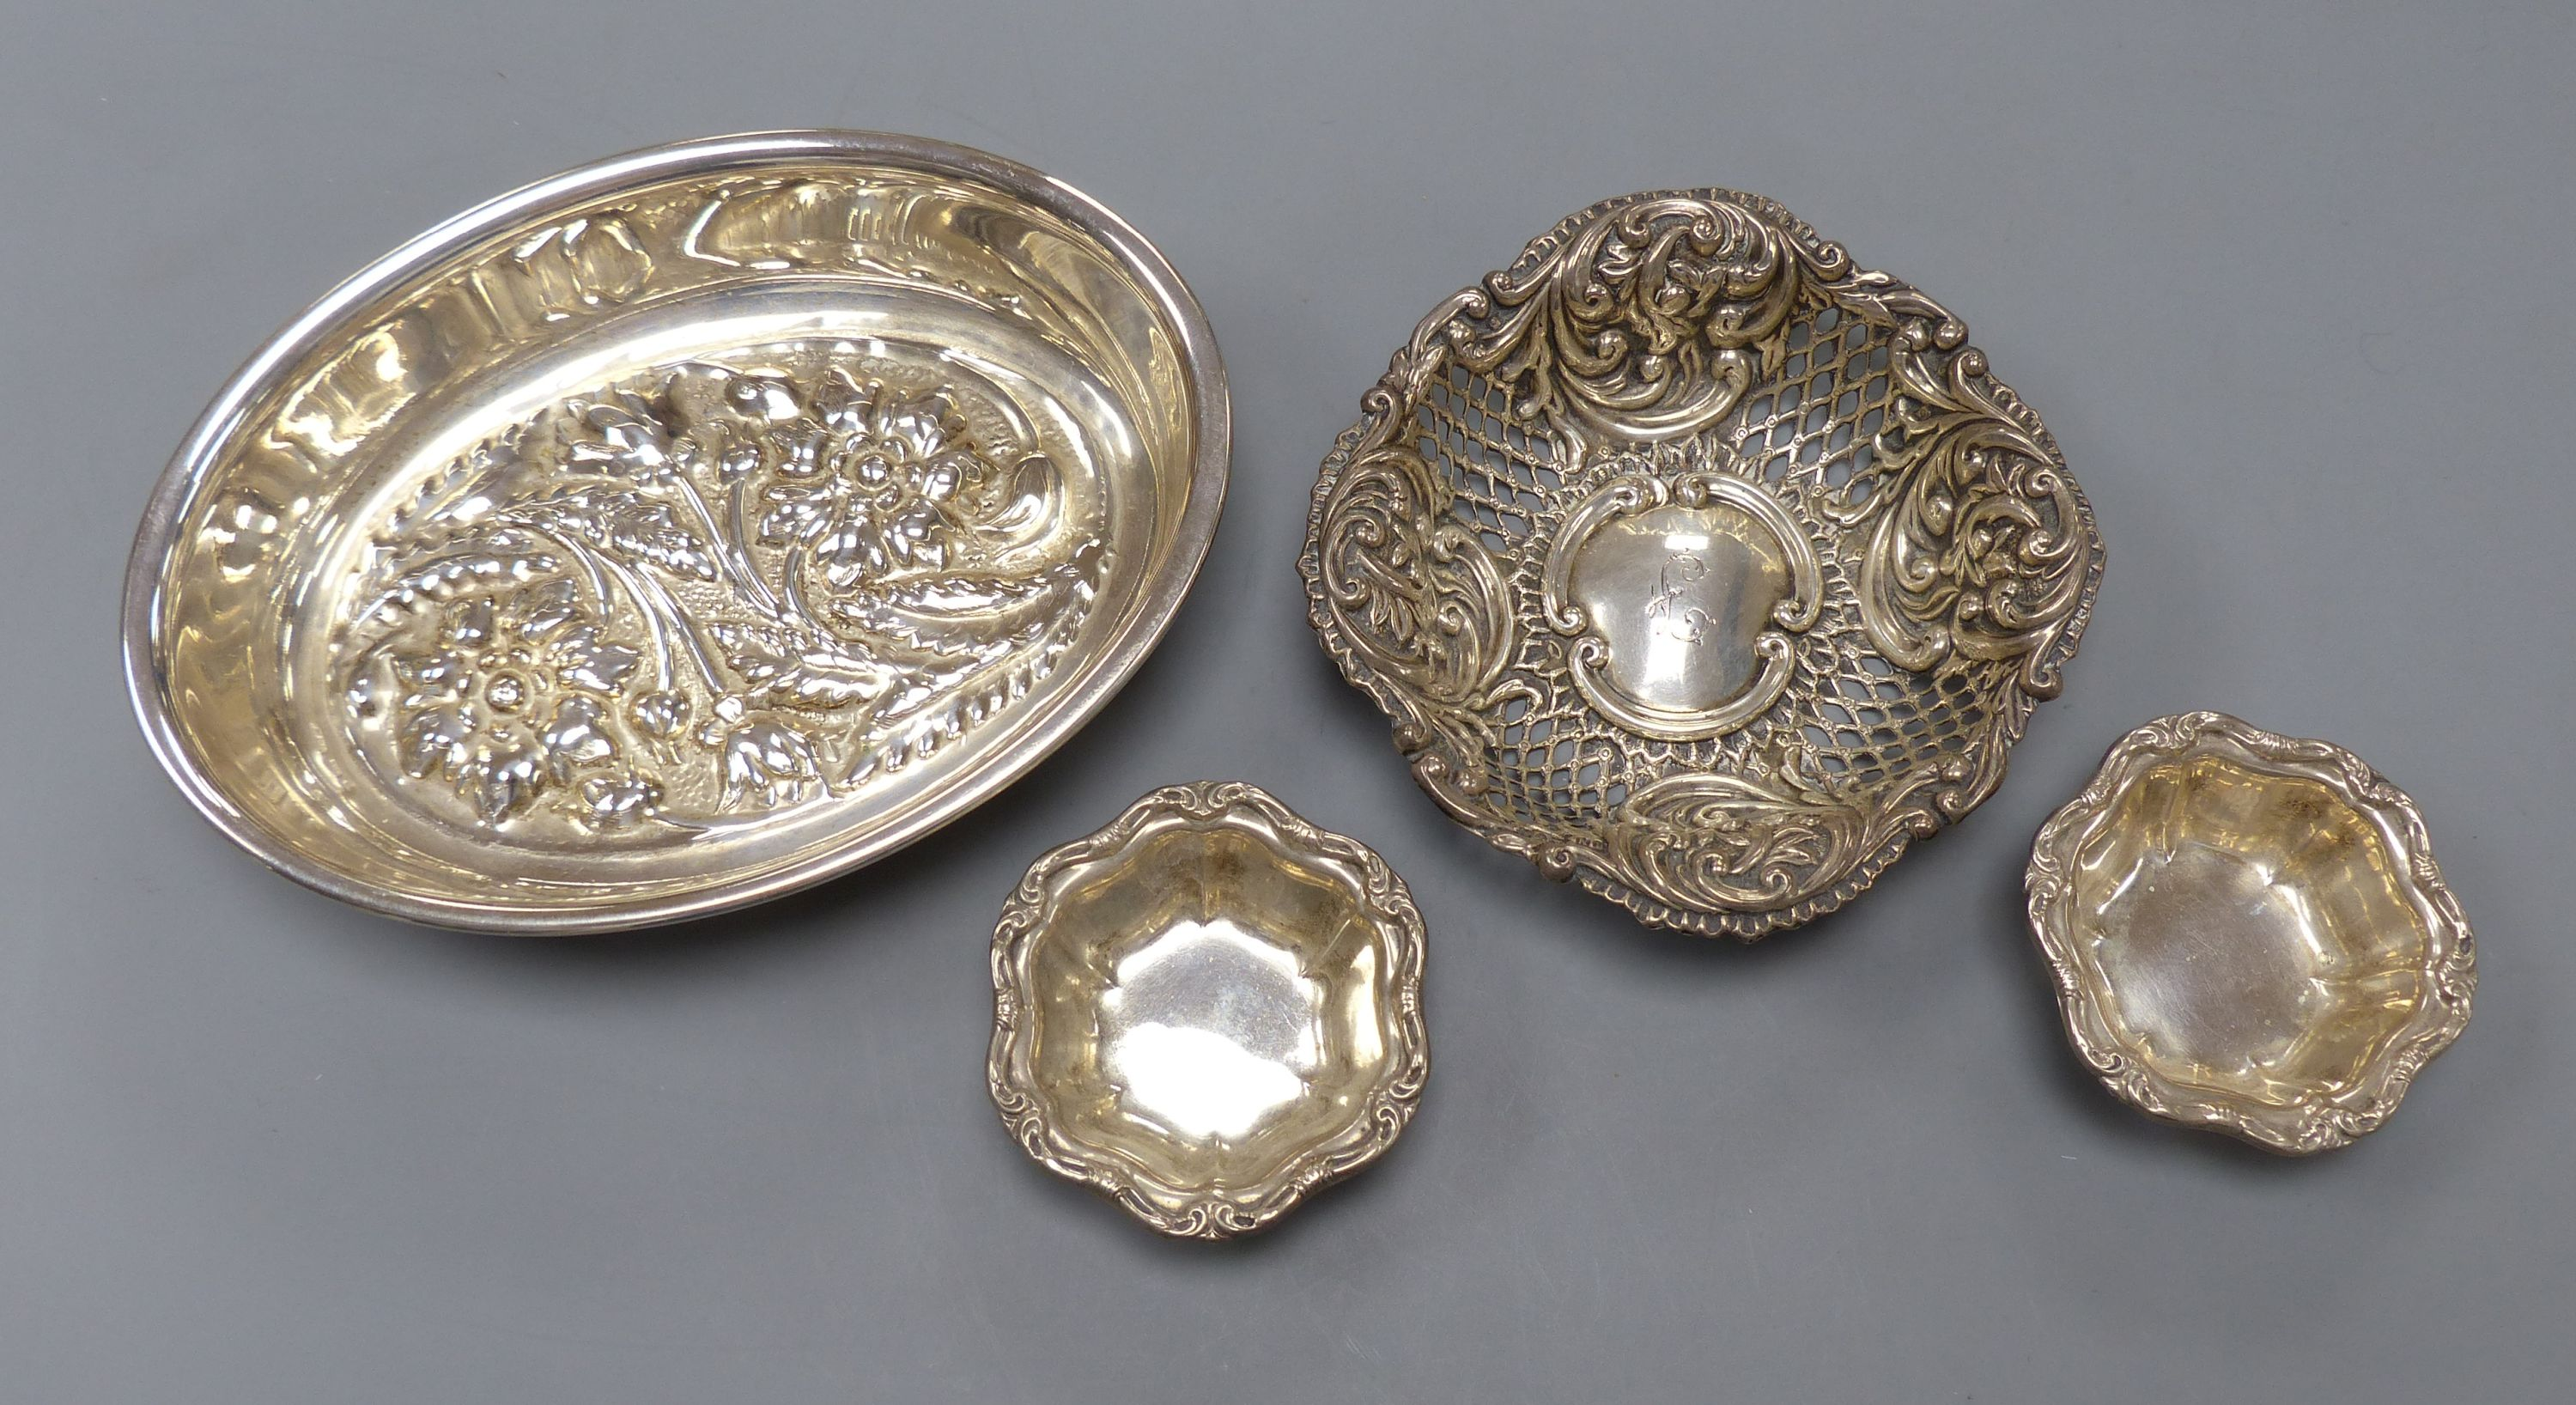 An Italian 8000 standard white metal oval bowl, 15.8cm, two small Birks sterling salts and a